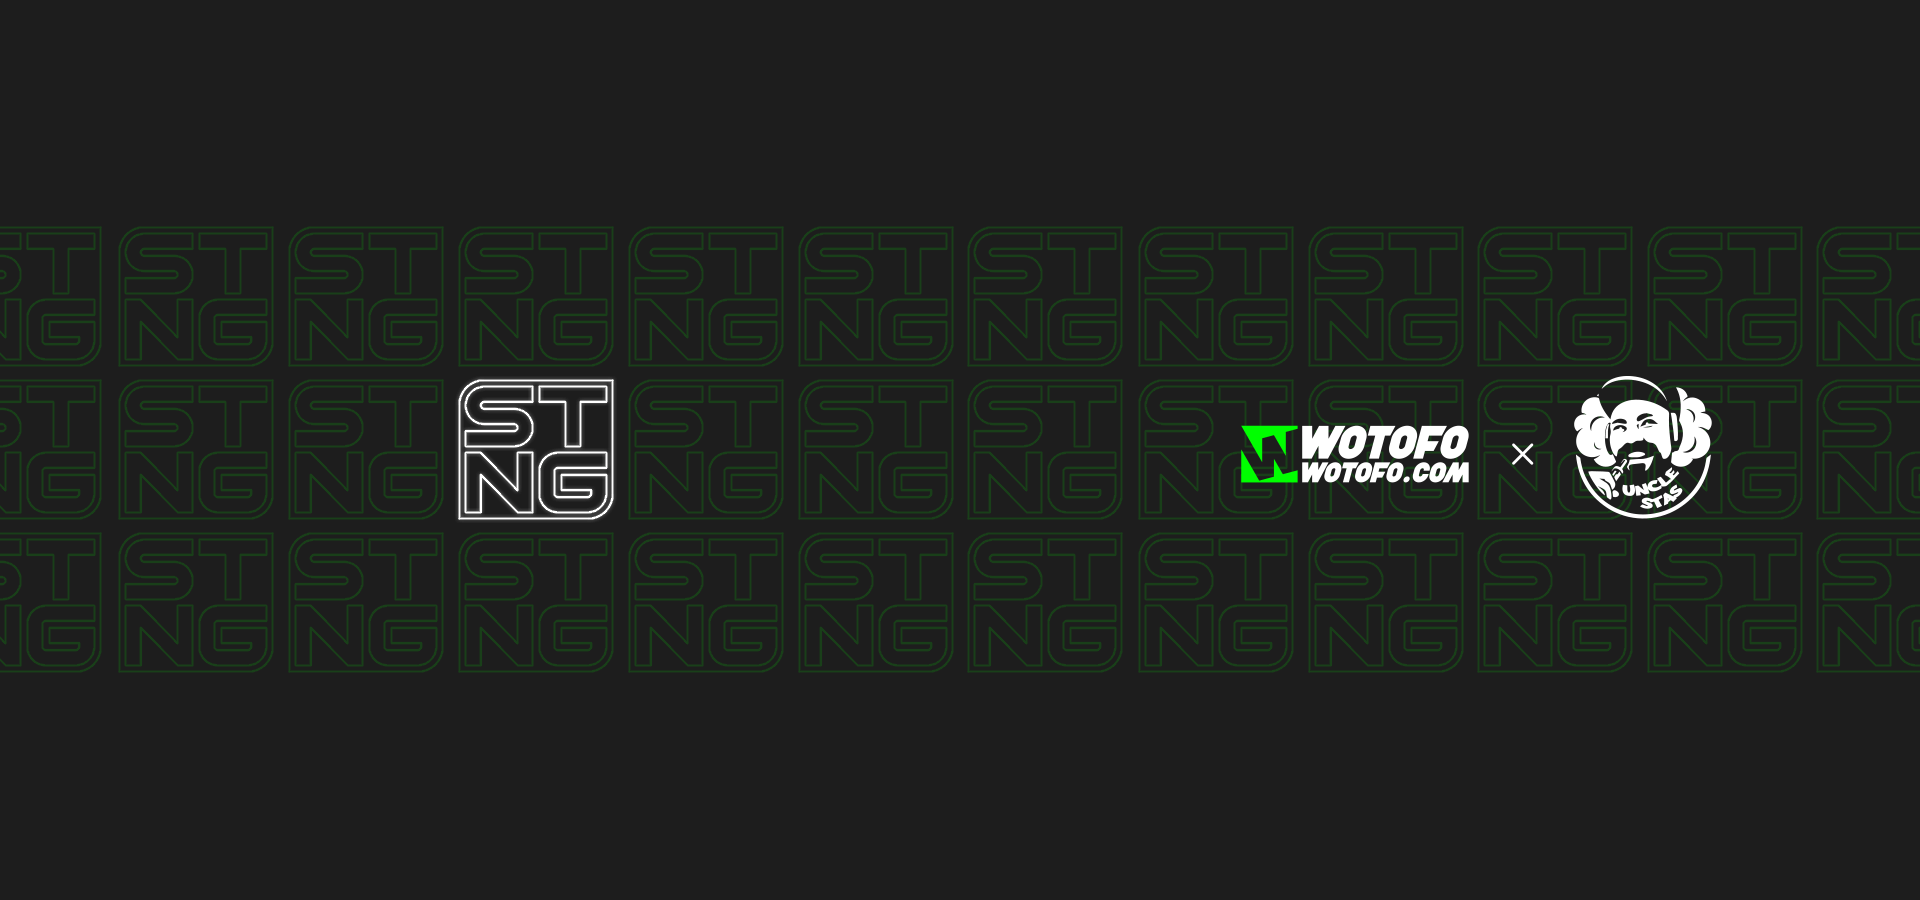 wotofo middle banner